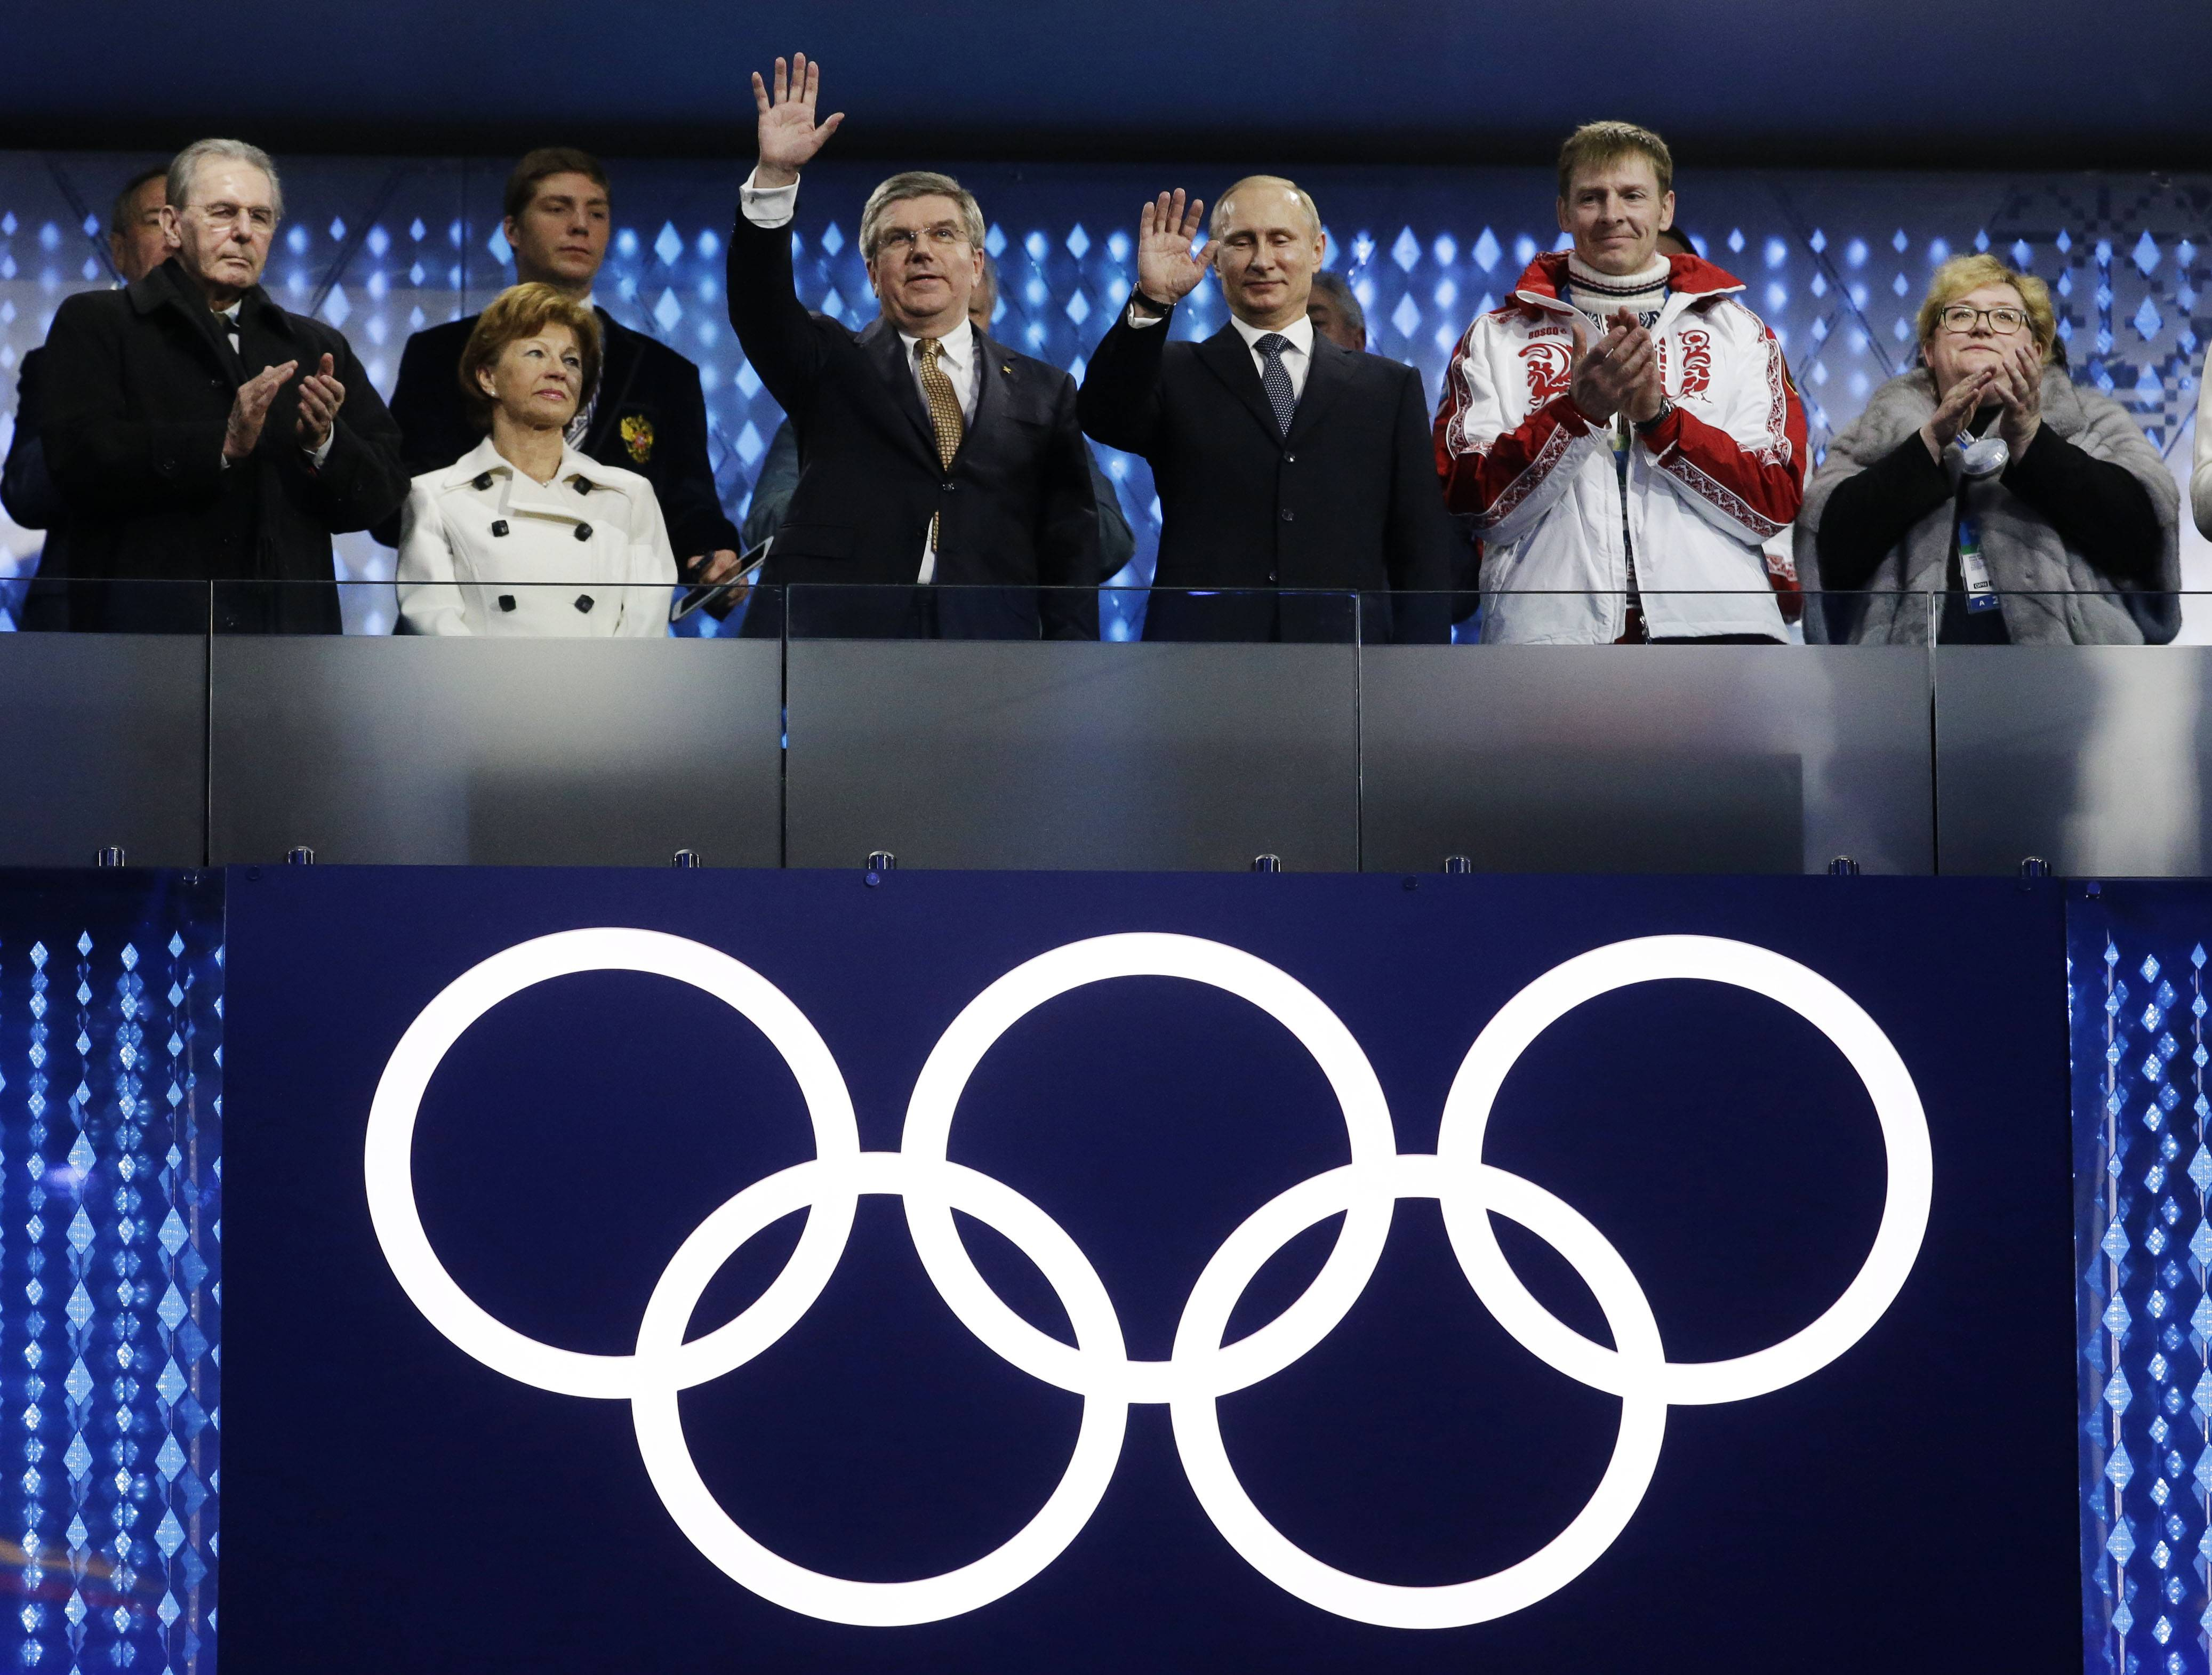 International Olympic Committee (IOC) President Thomas Bach, third from left, and Russian President Vladimir Putin, third from right, wave to spectators during the closing ceremony of the 2014 Winter Olympics, Sunday, Feb. 23, 2014, in Sochi, Russia. At far left is former IOC President Jacques Rogge.